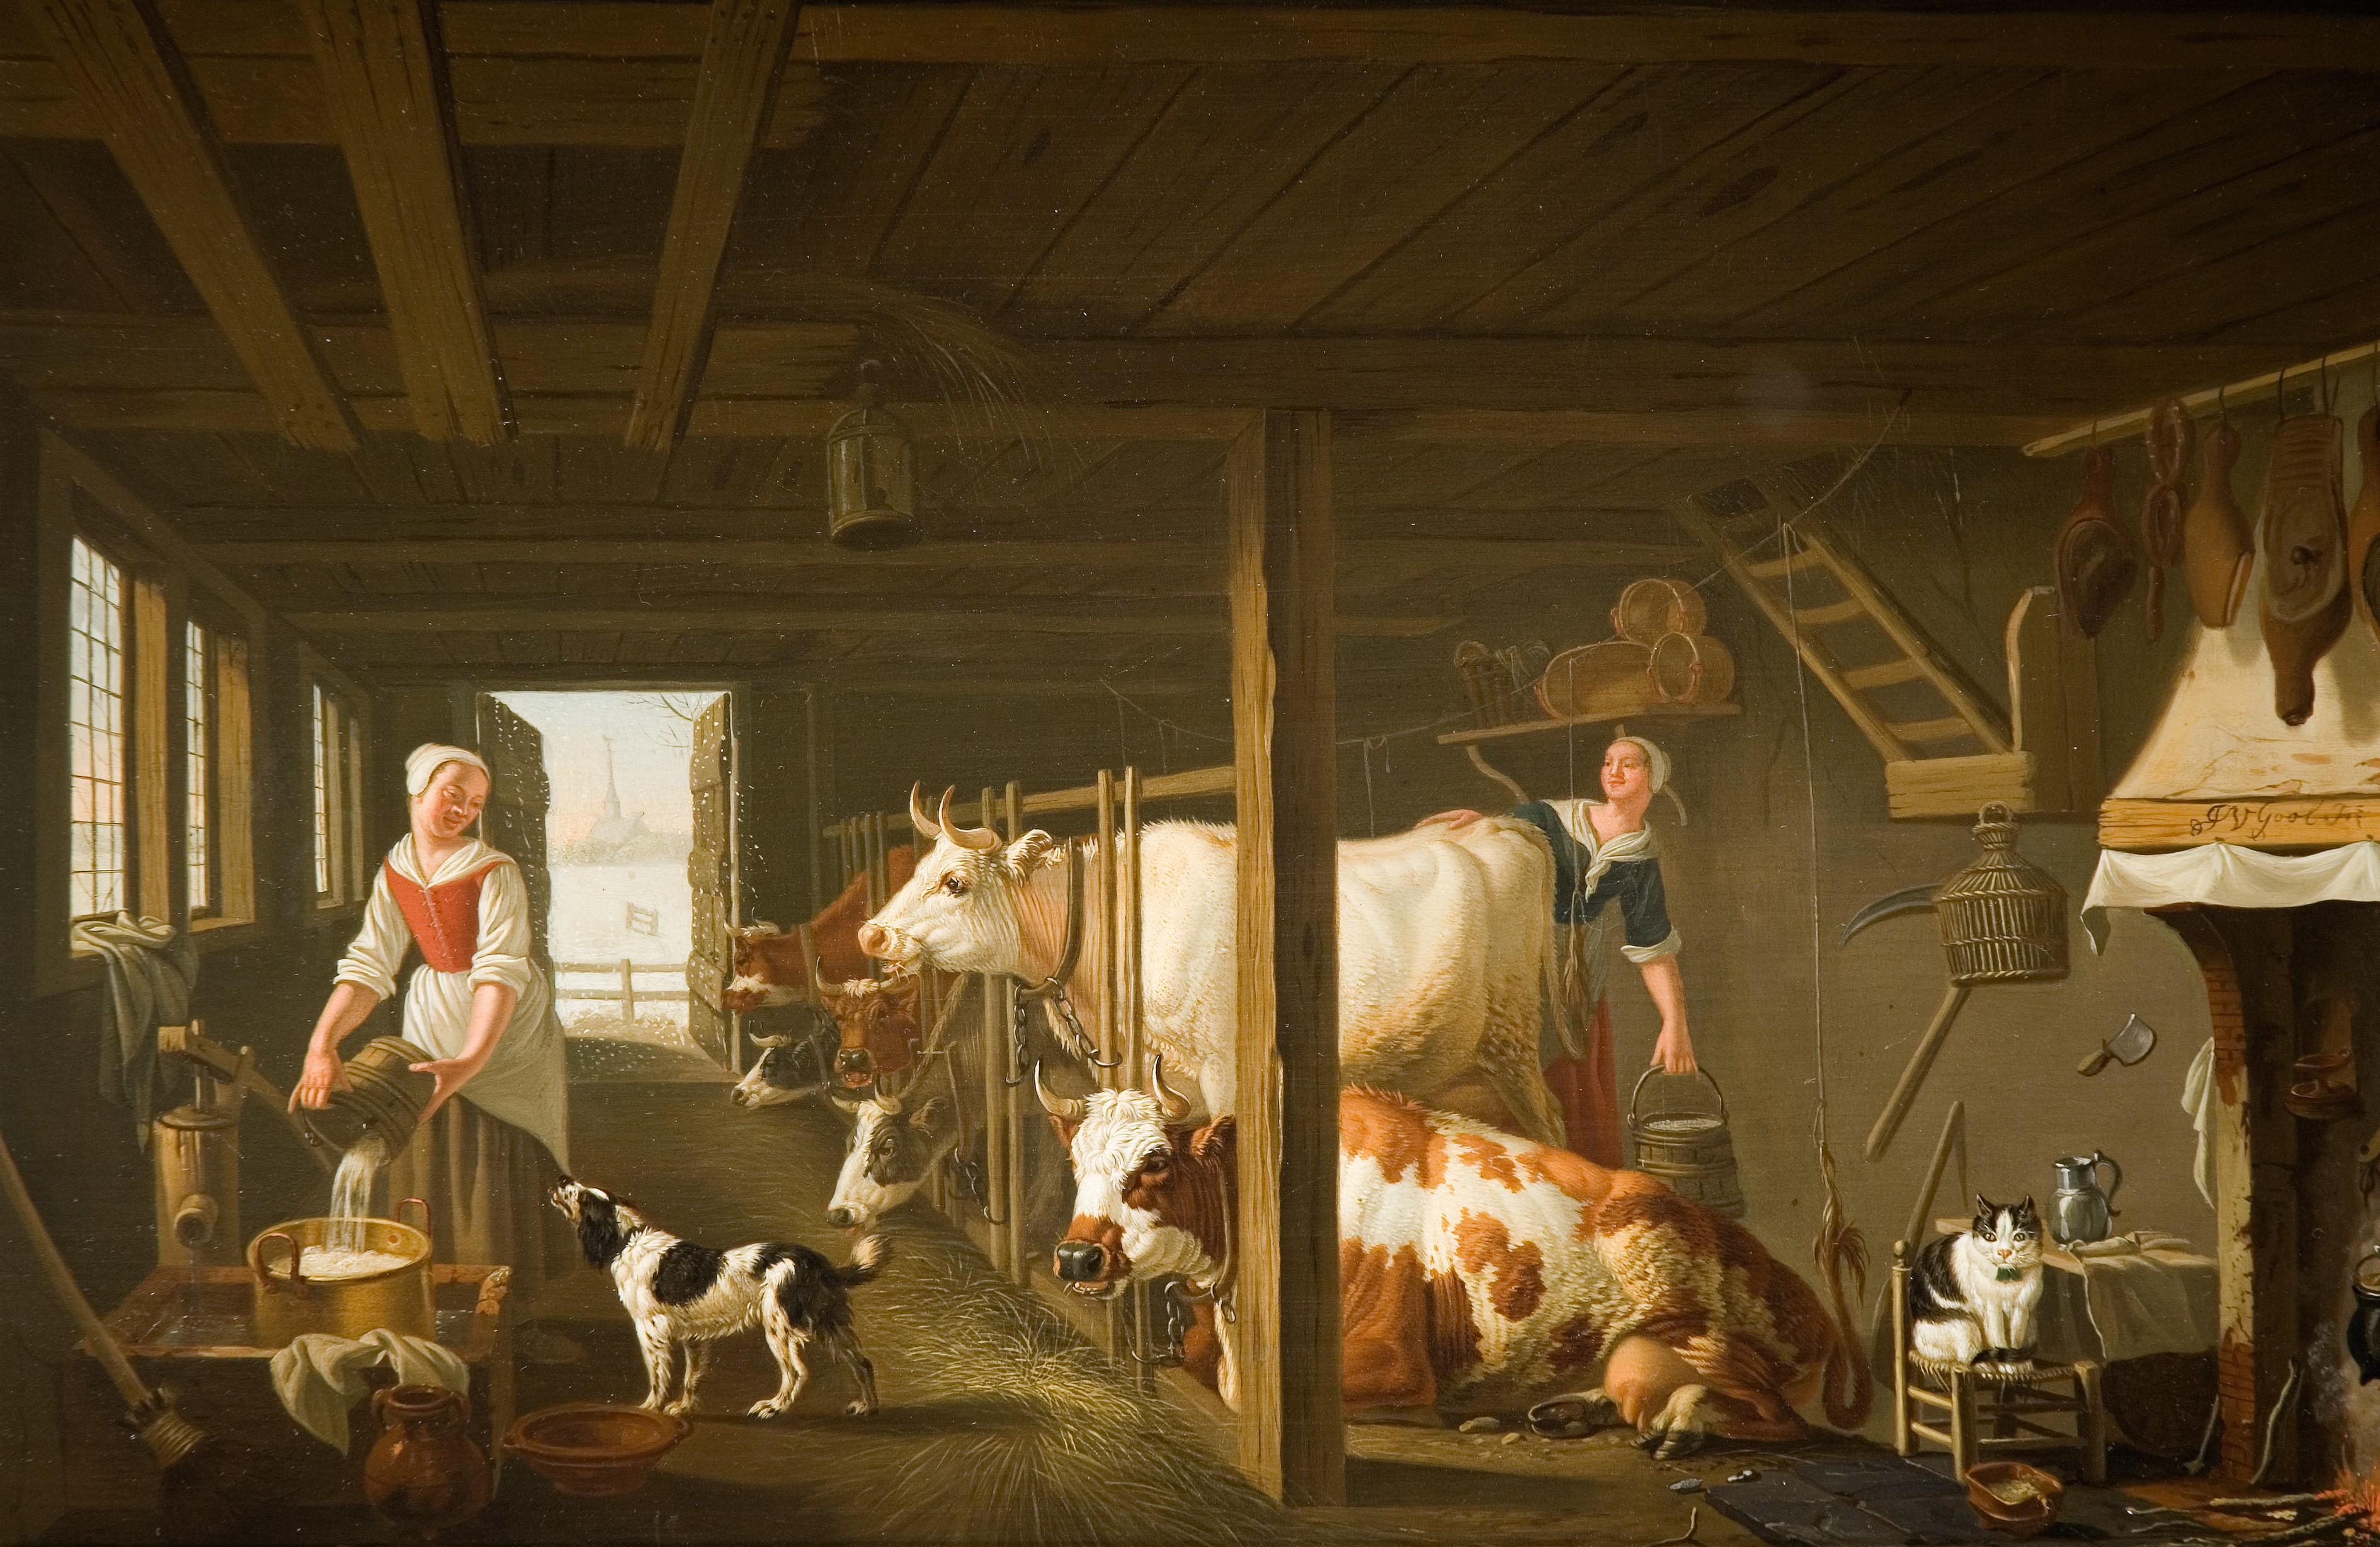 An oil painting of two women milking cows in a barn.